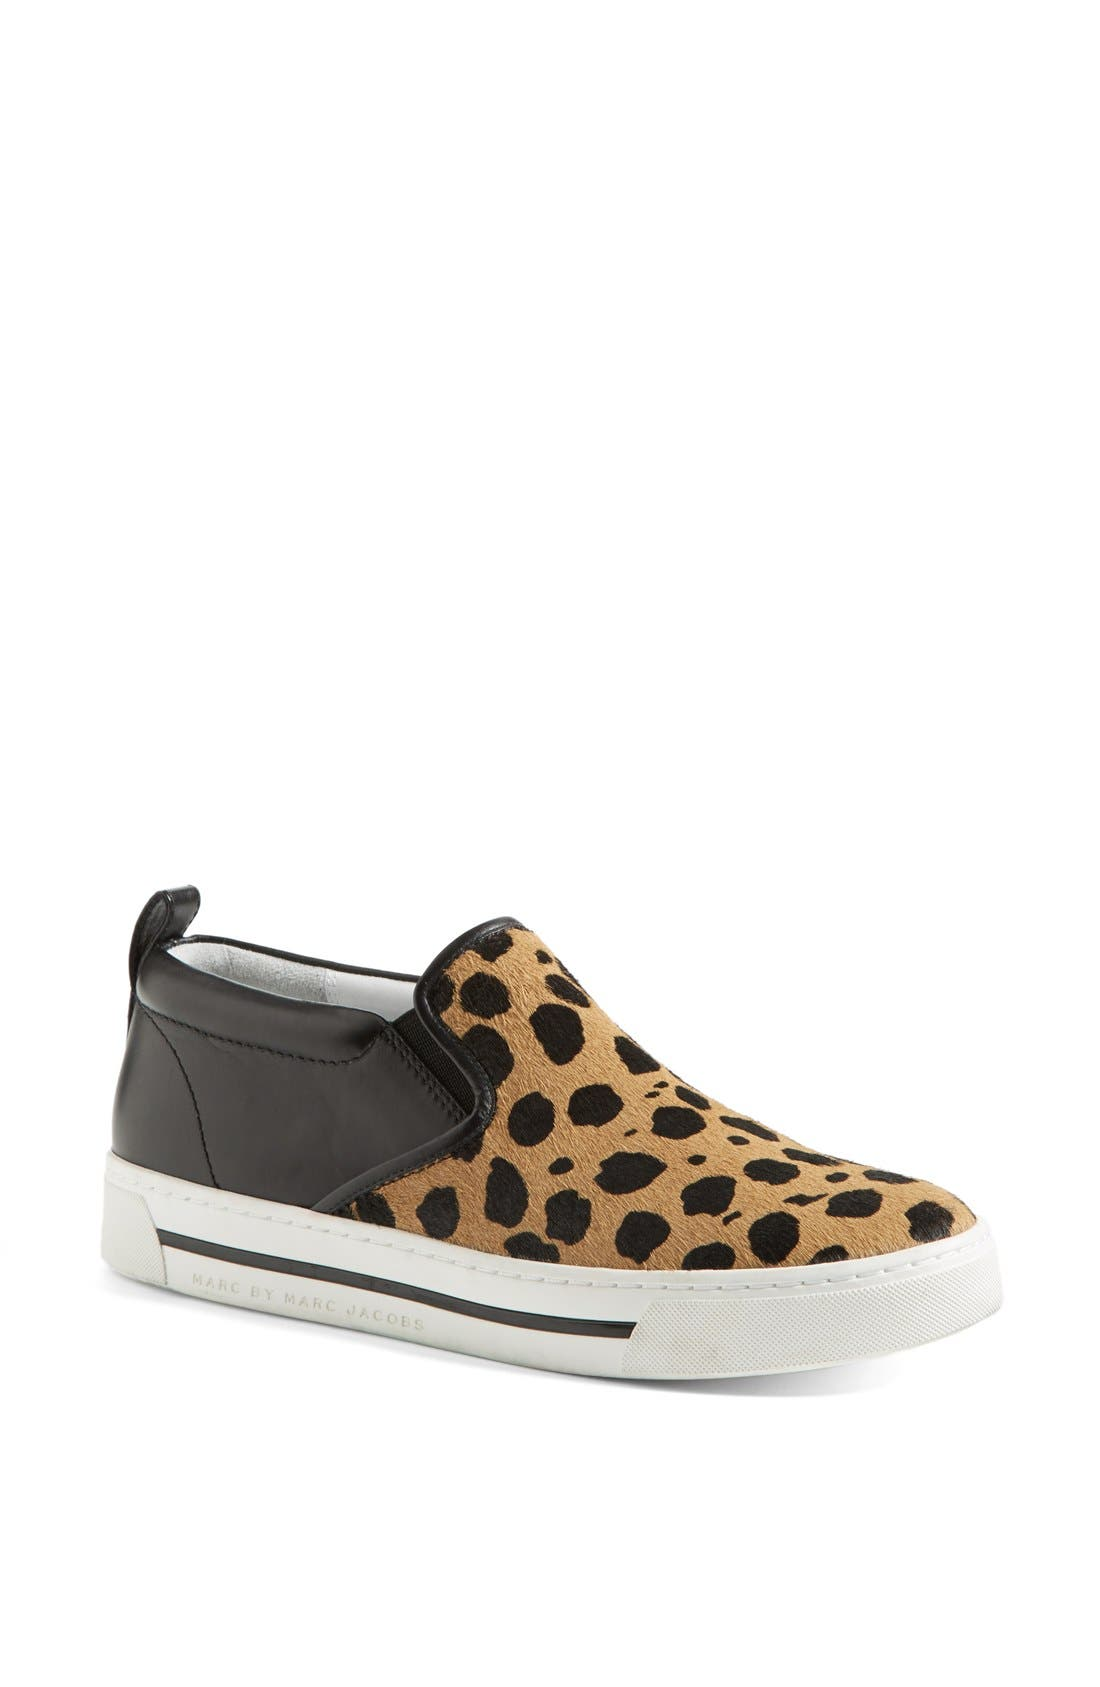 MARC BY MARC JACOBS Leather & Calf Hair Slip-On Sneaker,                         Main,                         color,